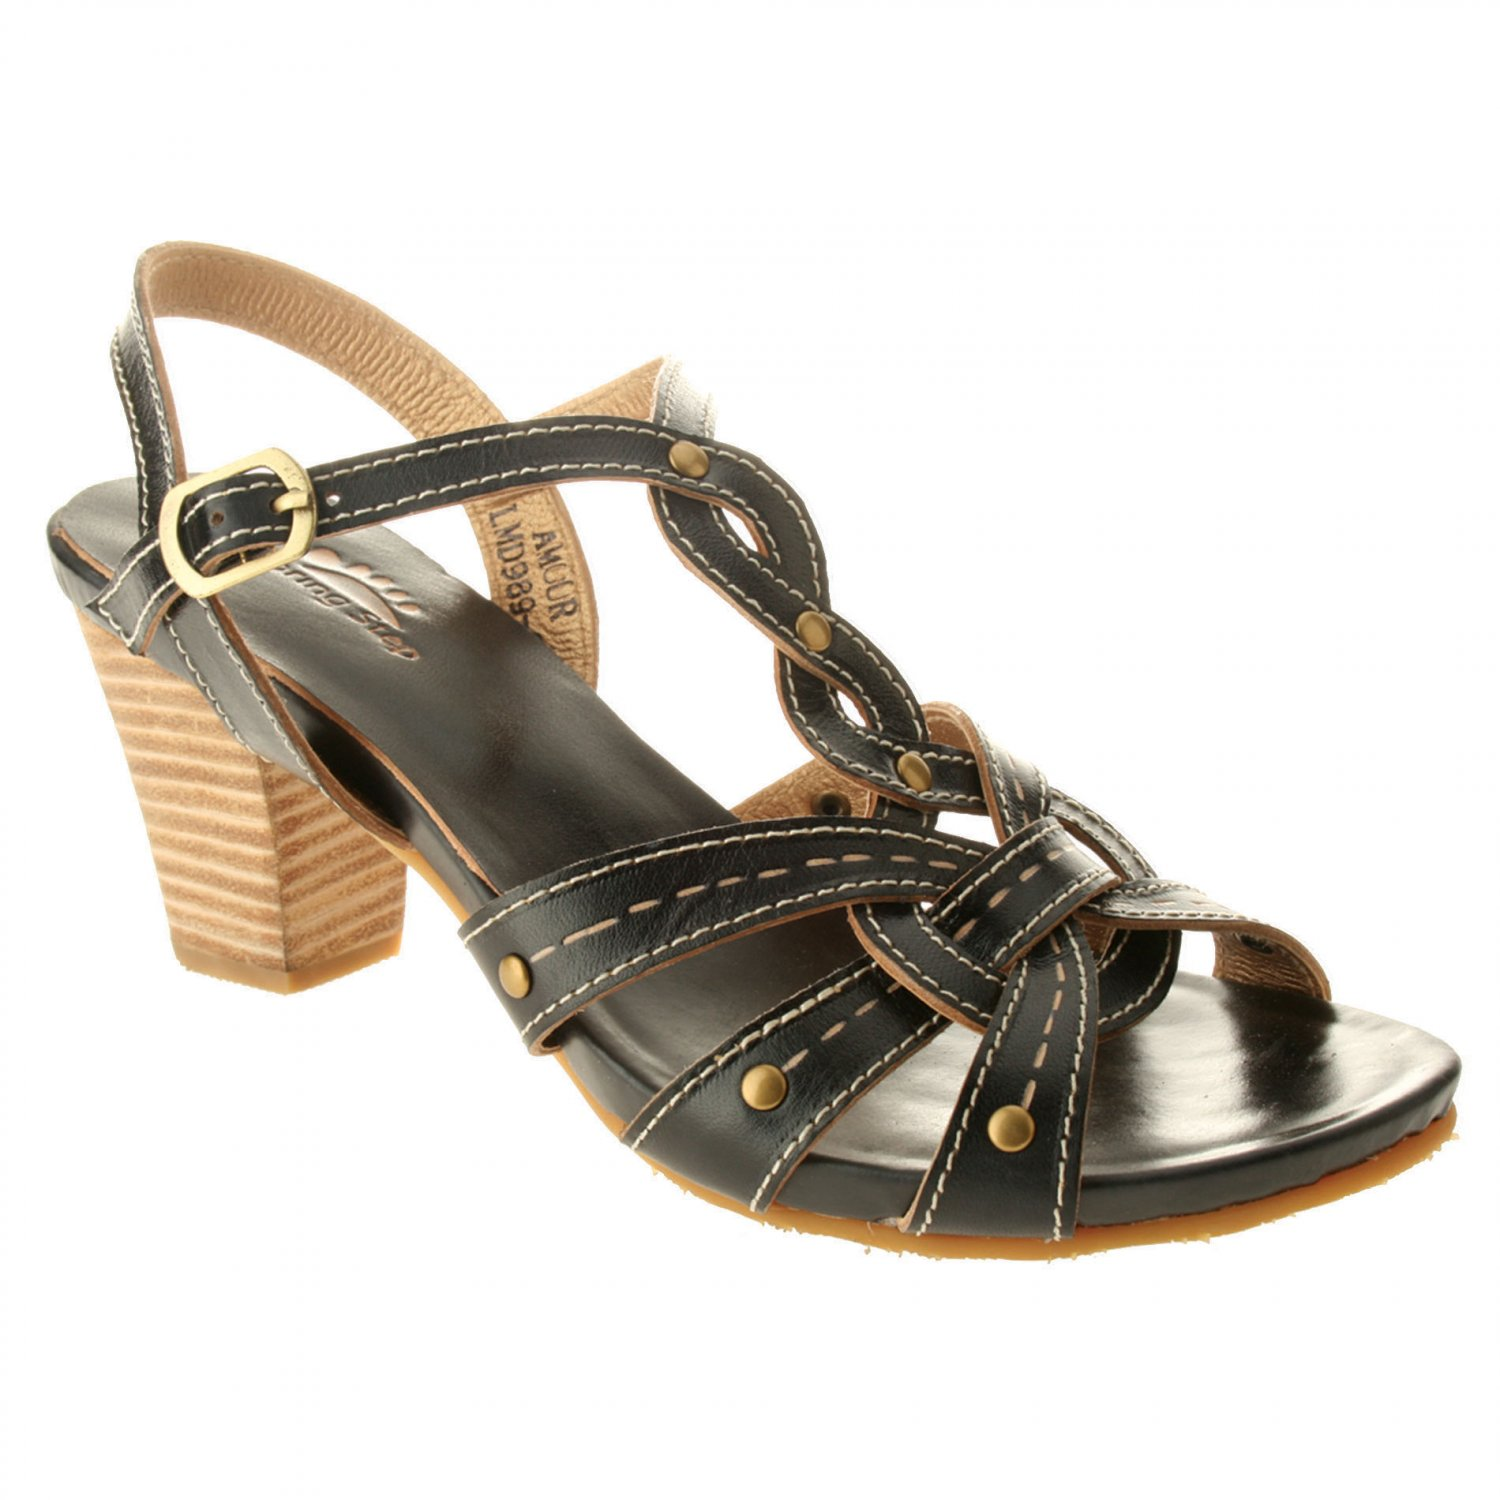 Spring Step AMOUR Sandals Shoes All Sizes & Colors $99